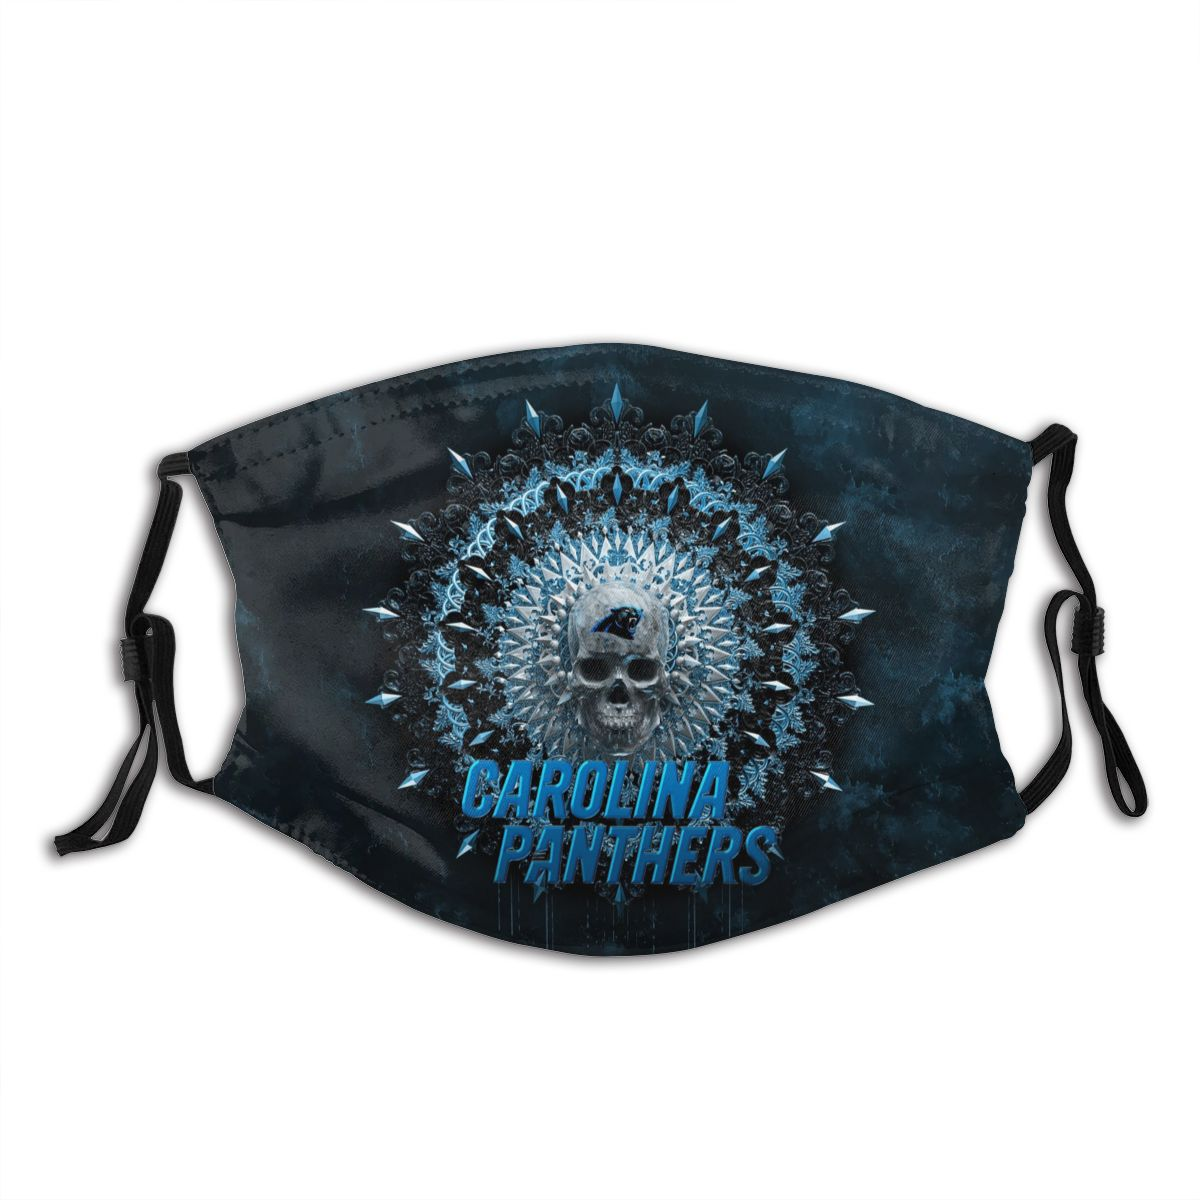 Panthers Adult Cloth Face Covering With Filter